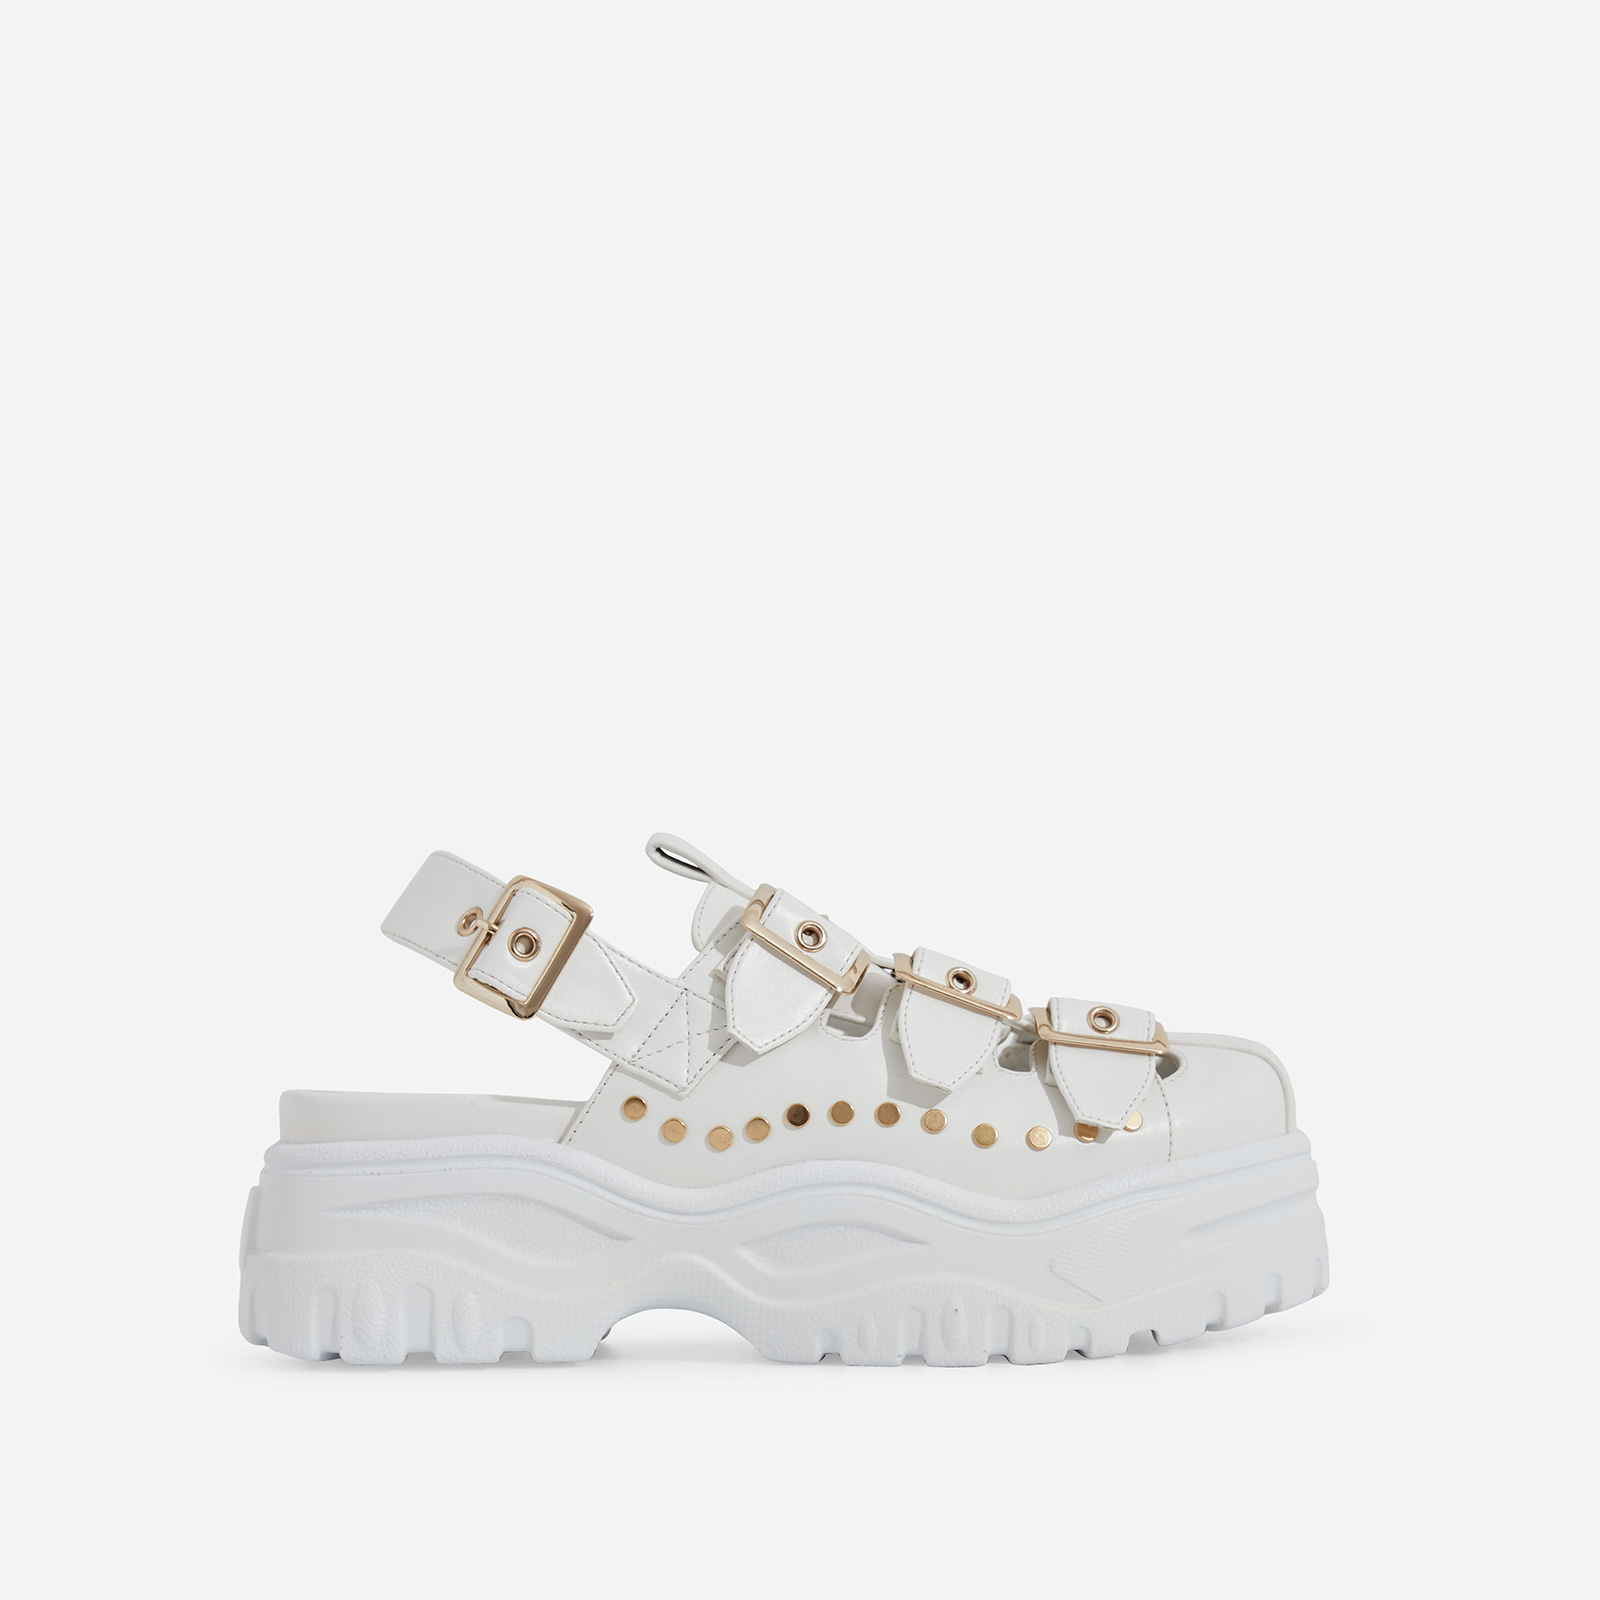 Poppy Buckle Detail Chunky Sole Sandal In White Faux Leather